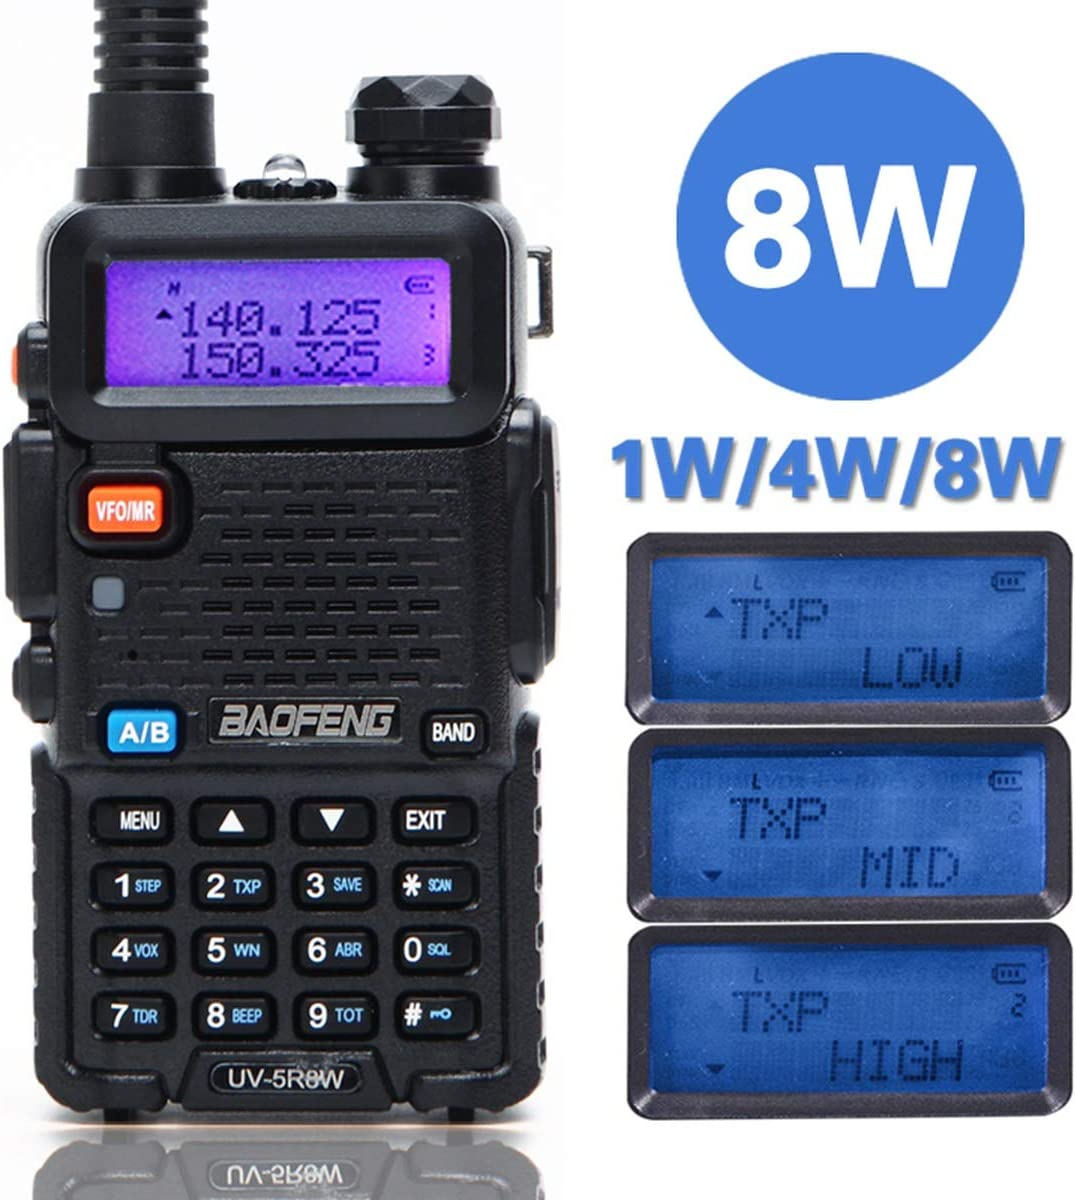 BaoFeng UV-5R 8 Watt High Power Dual Band Two Way Radio Tri-Power 8 4 1W 136-174 400-520MHz VHF UHF Portable Ham Radio